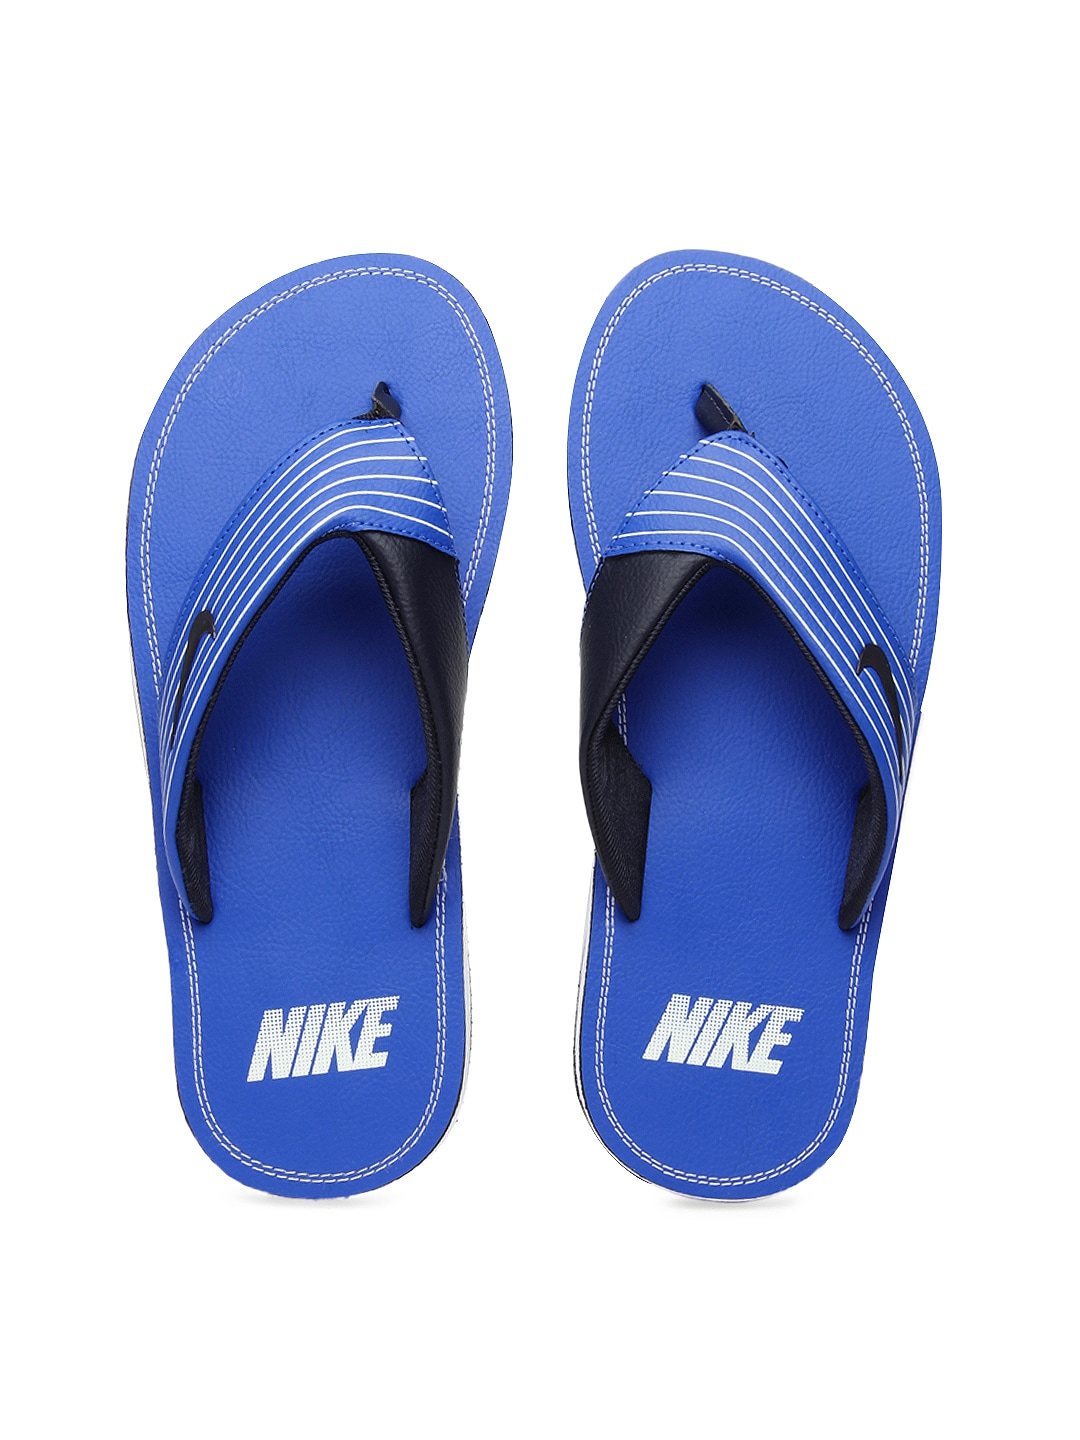 e9ca1b199de7d5 Buy Nike Men Blue Chroma Thong III Flip-Flops 9554860 for women ...